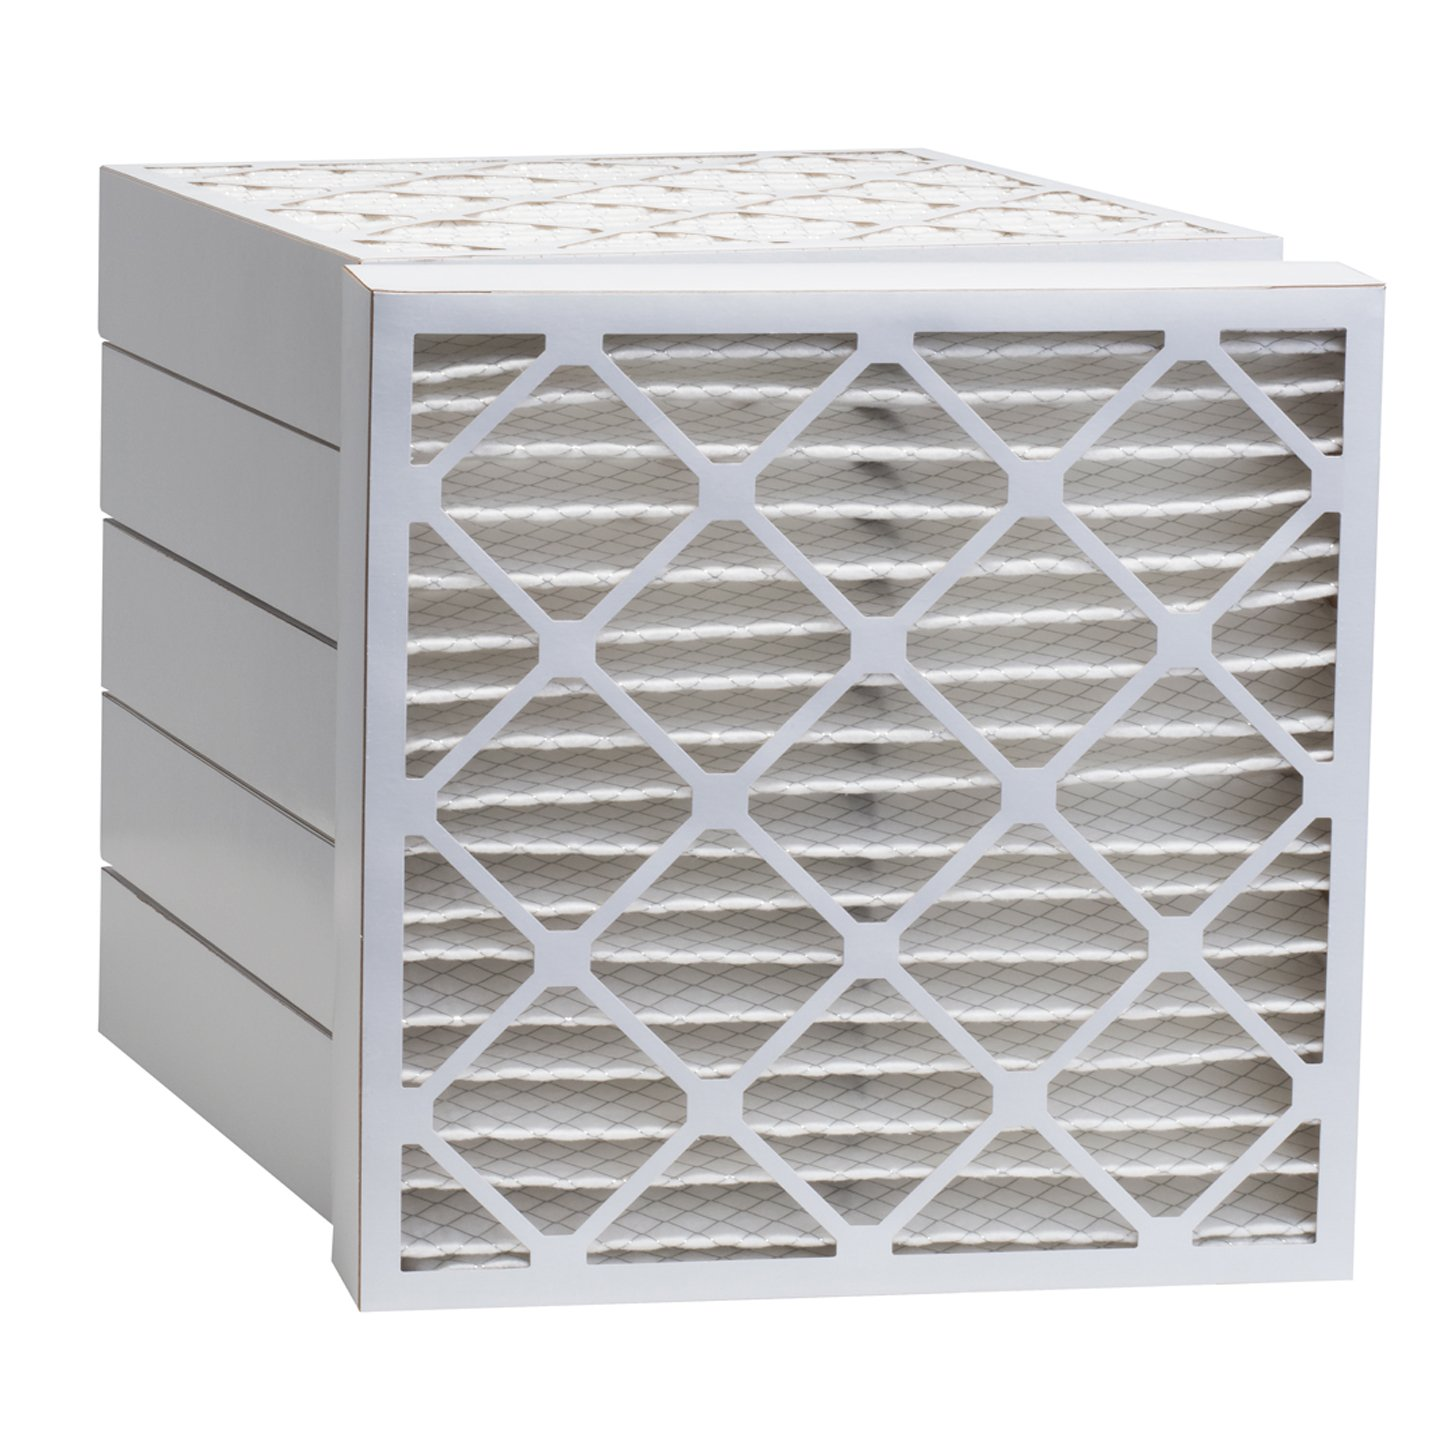 MERV 11 ReplacementBrand P15S-611830-6-PACK P15S-611830 Pleated Air Filter Pleated Fabric 18 x 30 x 1 18 x 30 x 1 Commercial Water Dist Pack of 6 P25S-642424-6-PACK